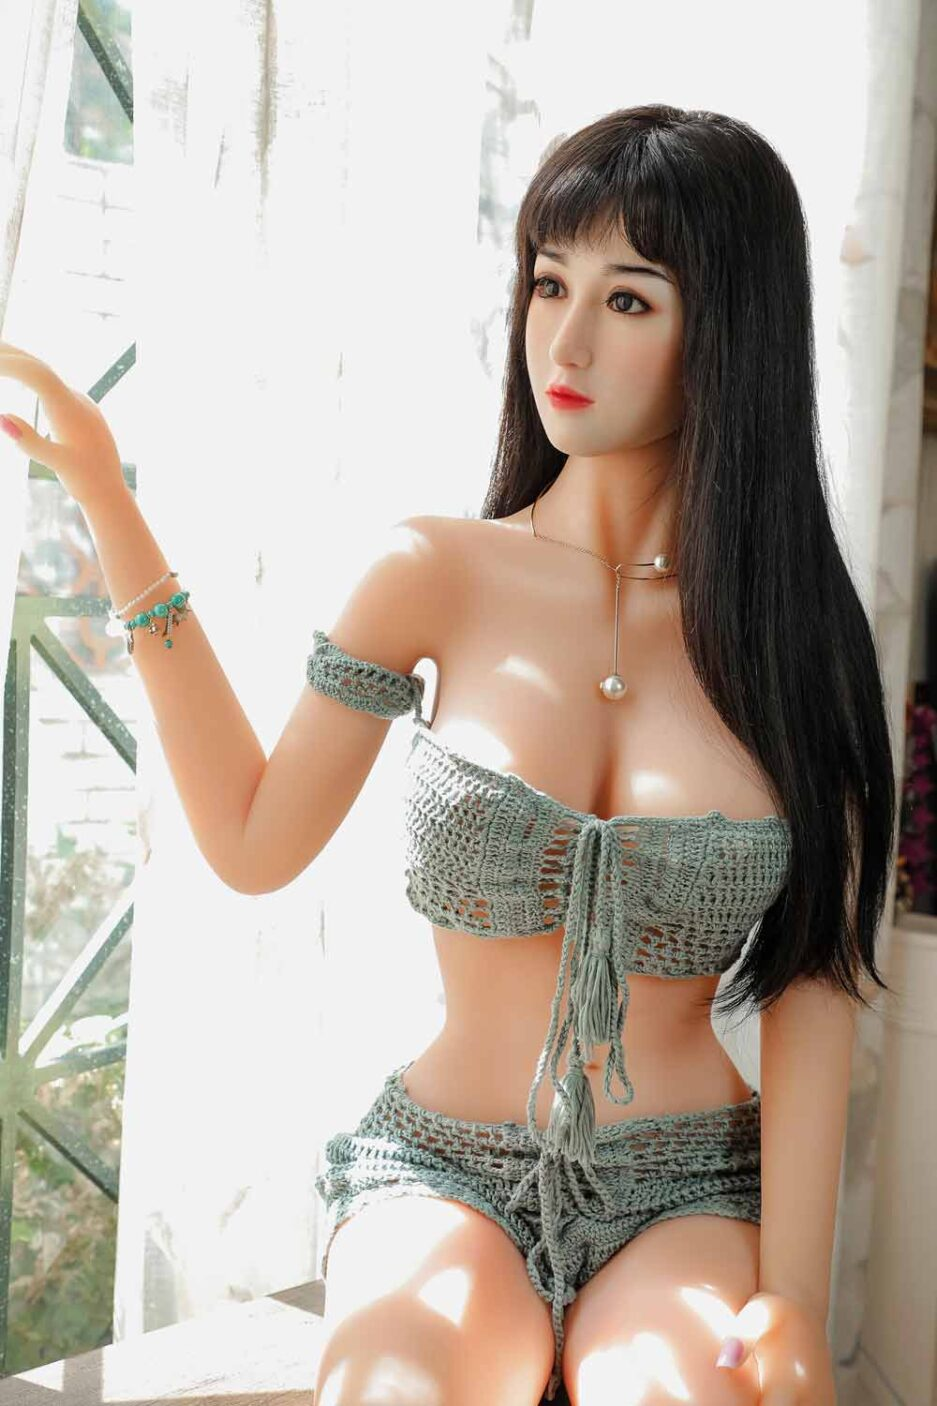 Silicone sex doll with curtains